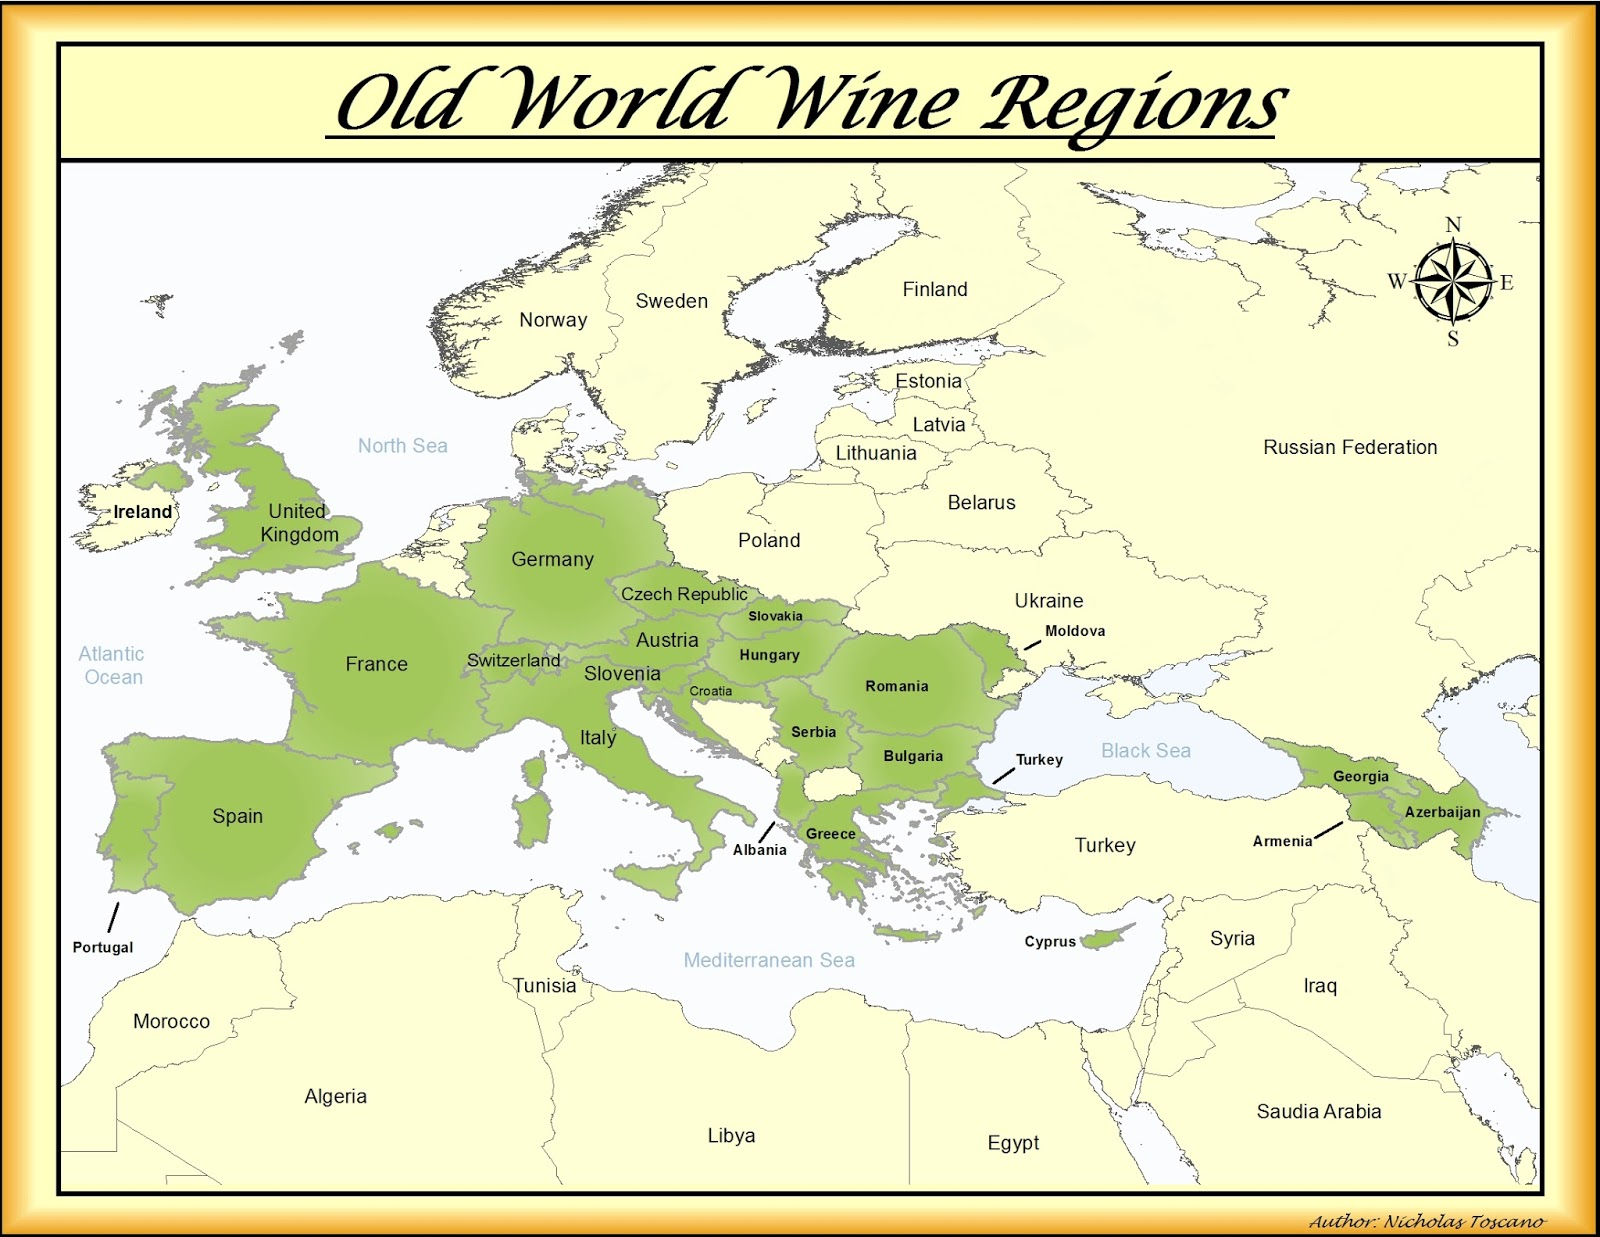 My Wine Journal: Old World Wine Regions Old World Wine Regions Map on world history map, world map regions of the world, sonoma wine region map, south africa wine region map, hungary wine region map, world wine production map, world regions realms map, geography world regions map, world best red wine, world food map, world europe map, 49th parallel on map, california wine map, world new zealand map, world vintage map, world cultural regions map, world oregon map, world soils map, germany wine region map, world fashion capitals map,